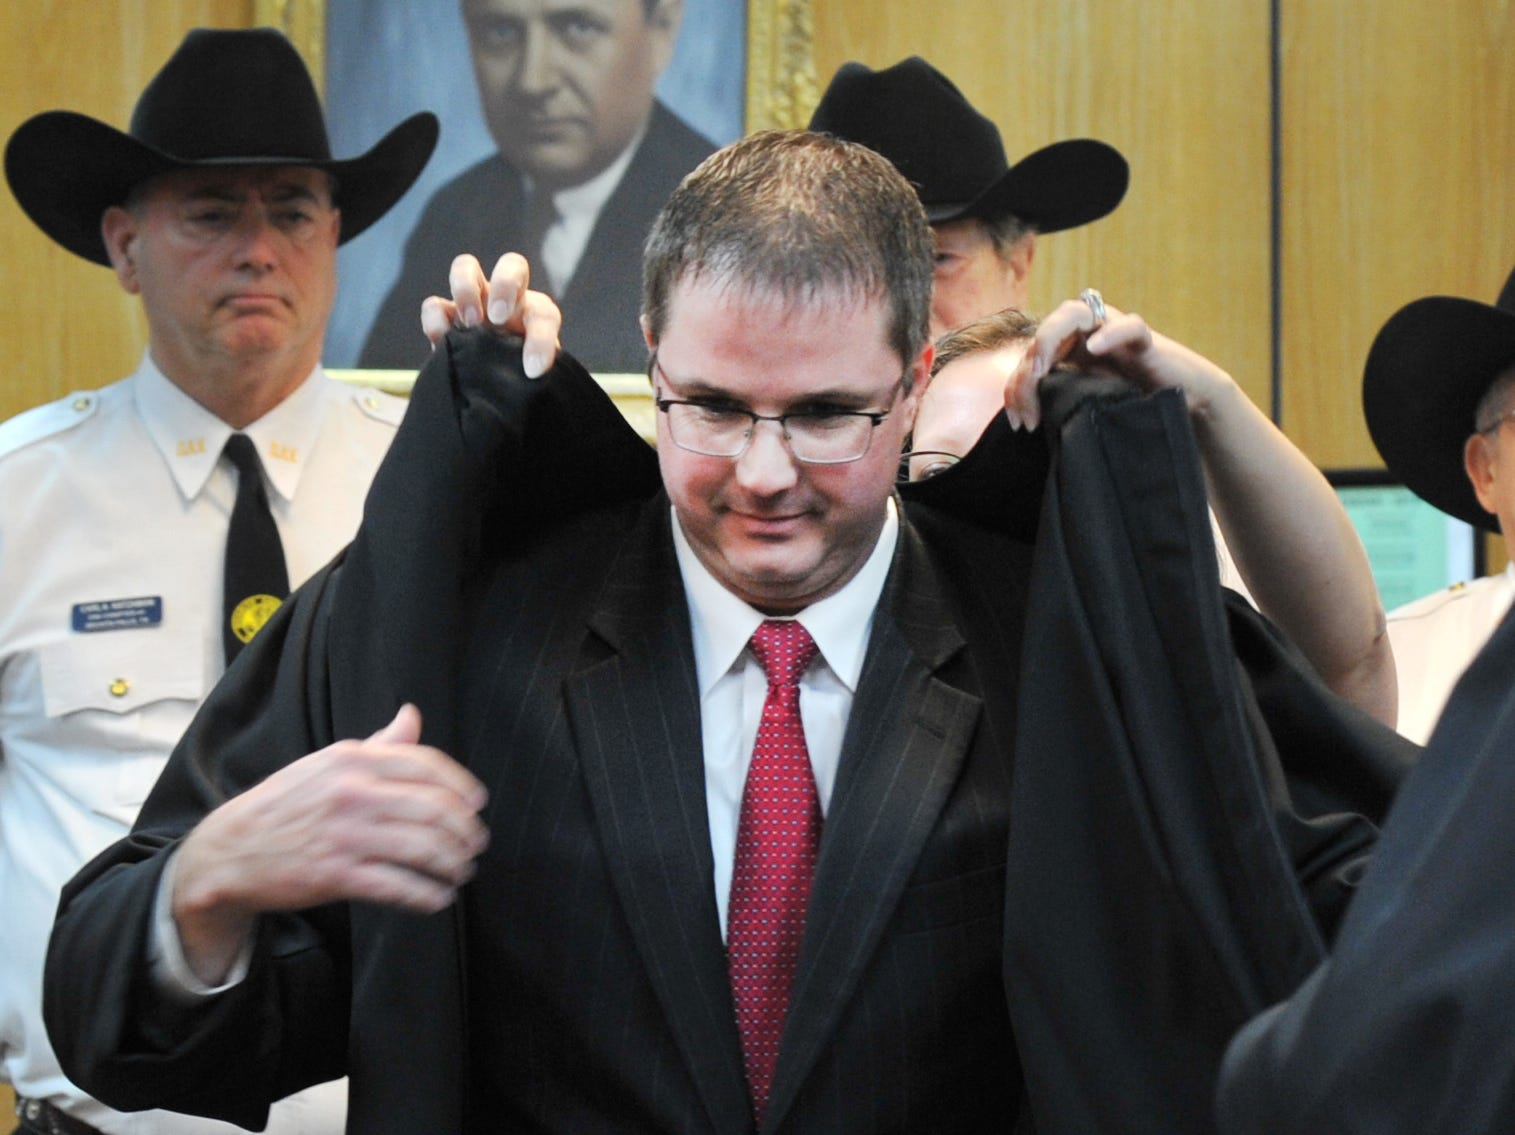 Jeff McKnight accepted his robe after being sworn in as the 30th District Courtroom Judge, Tuesday morning. McKnight sought the judgeship against fellow attorney Dobie Kosub after long-serving Judge Bob Brotherton announced his retirement.